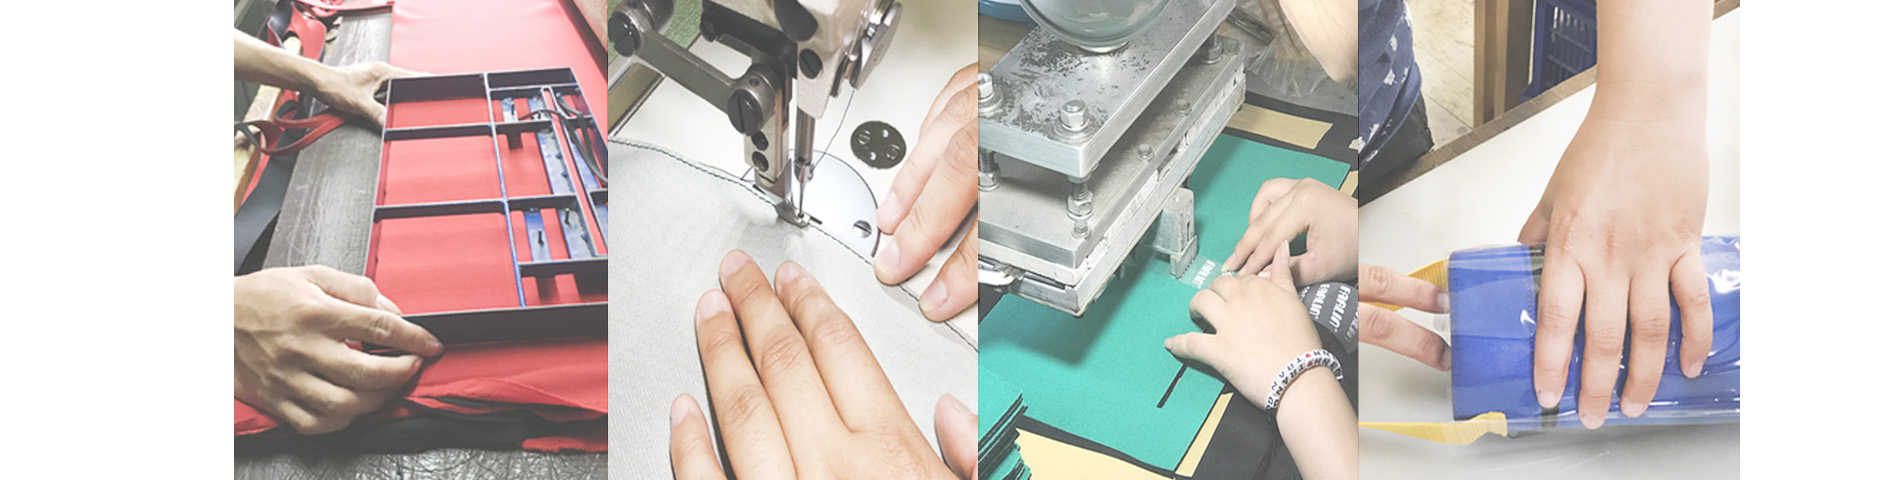 Comprehensive Supports and Braces Manufacturer